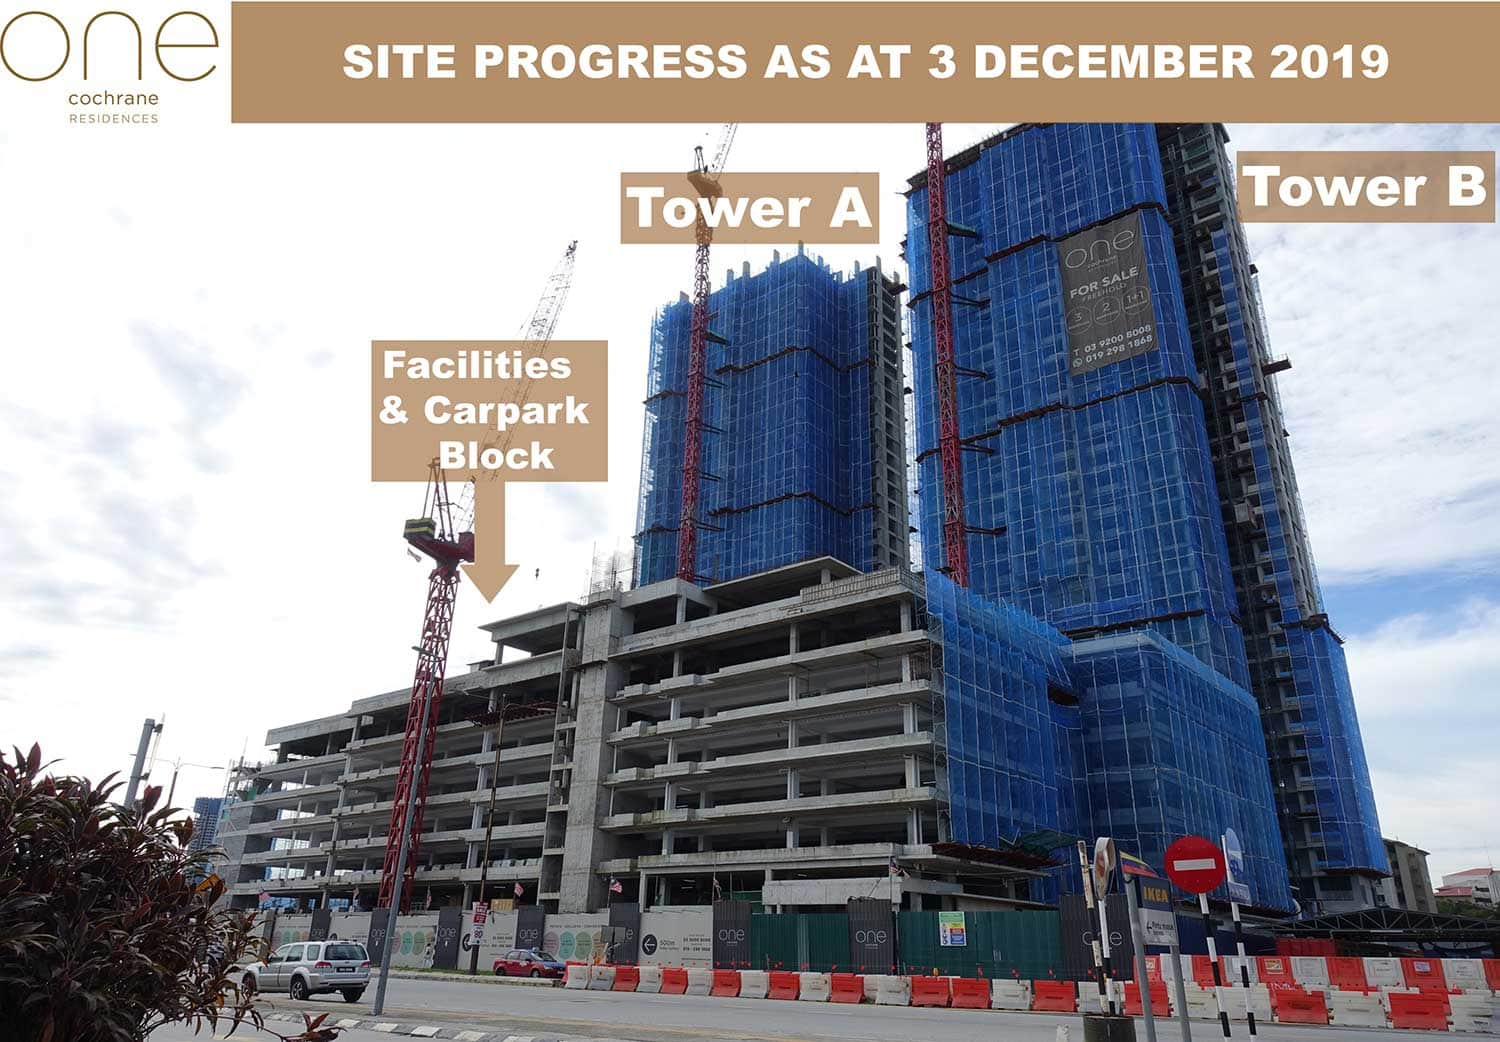 Site Progress As At 03 Dec 2019